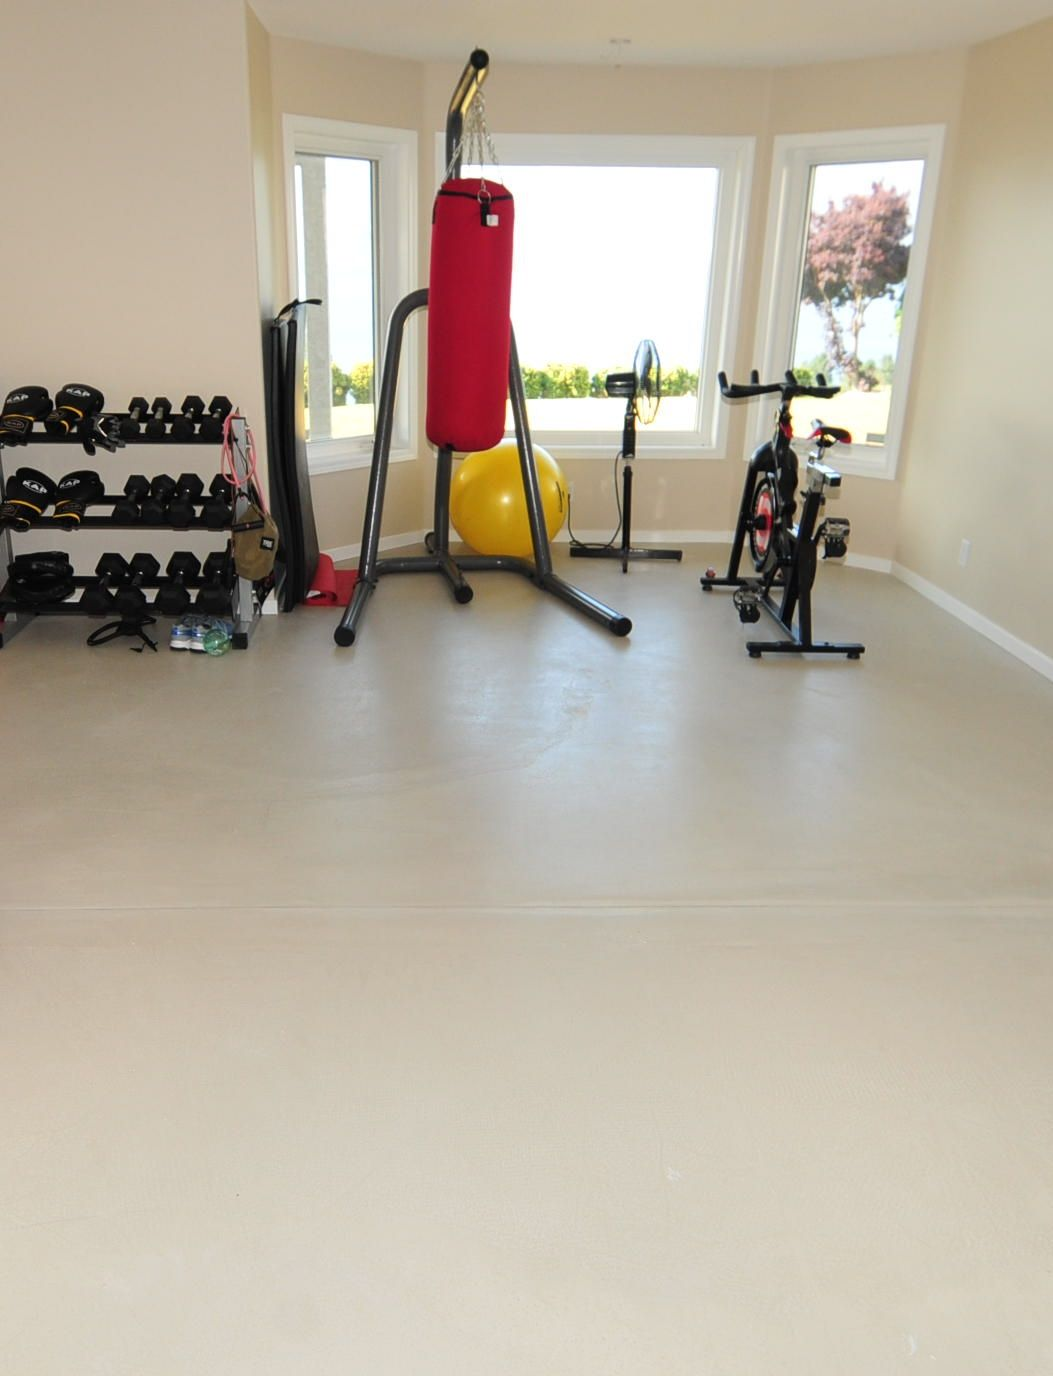 Home Gym With Concrete Floor Overlay Created By Mode Concrete In Kelowna Bc Home Gym Design Gym Design Concrete Decor